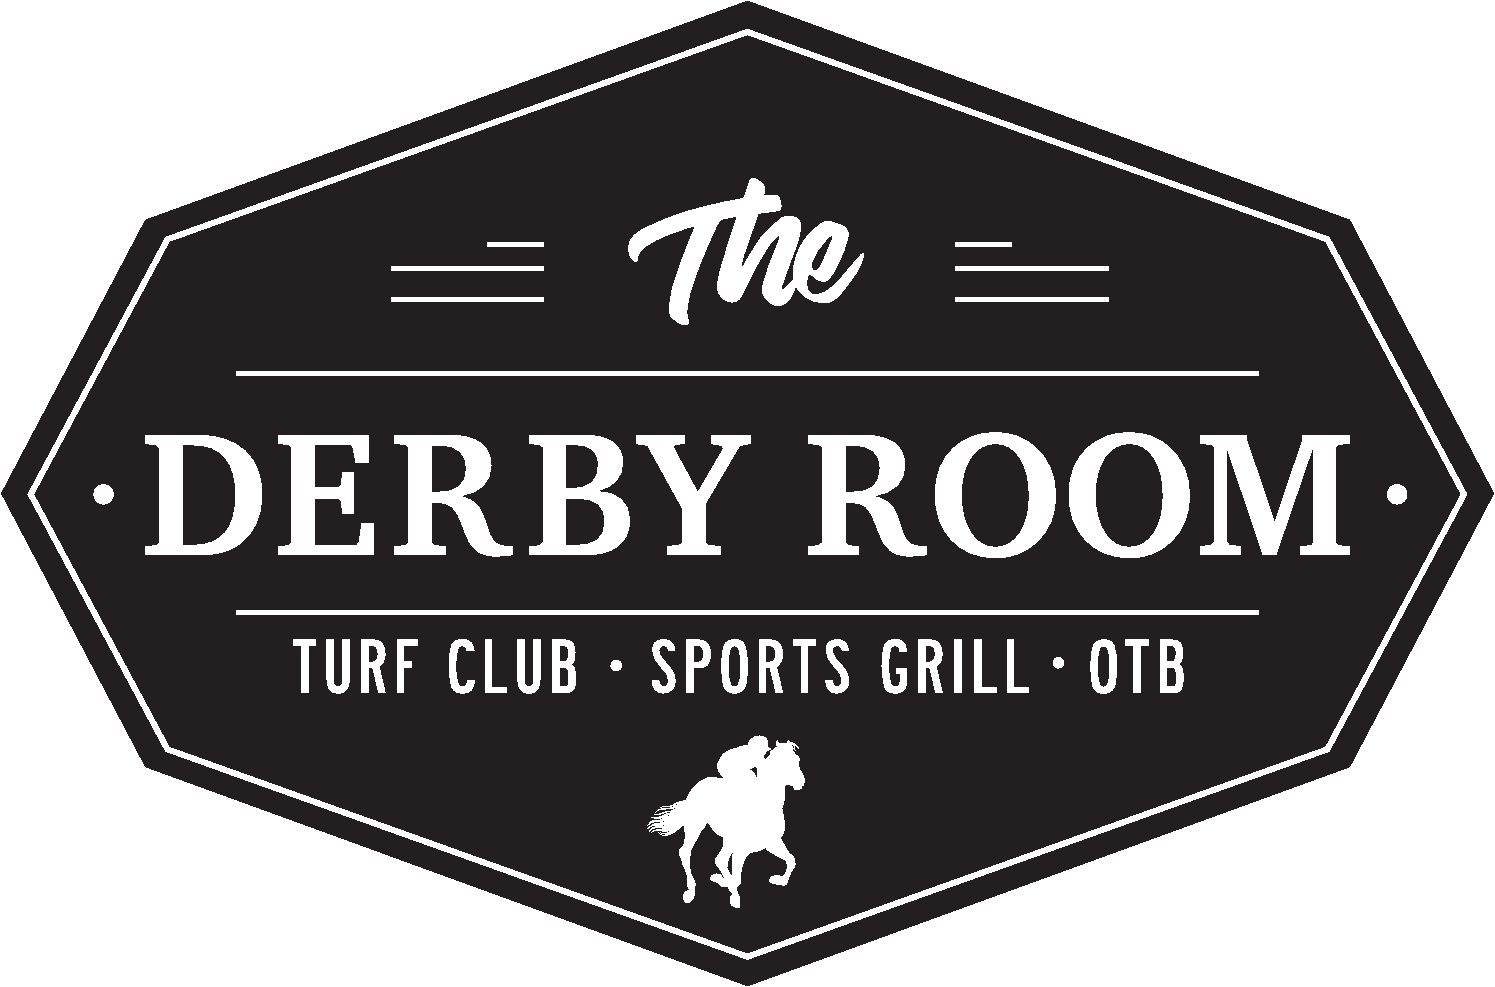 The Derby Room